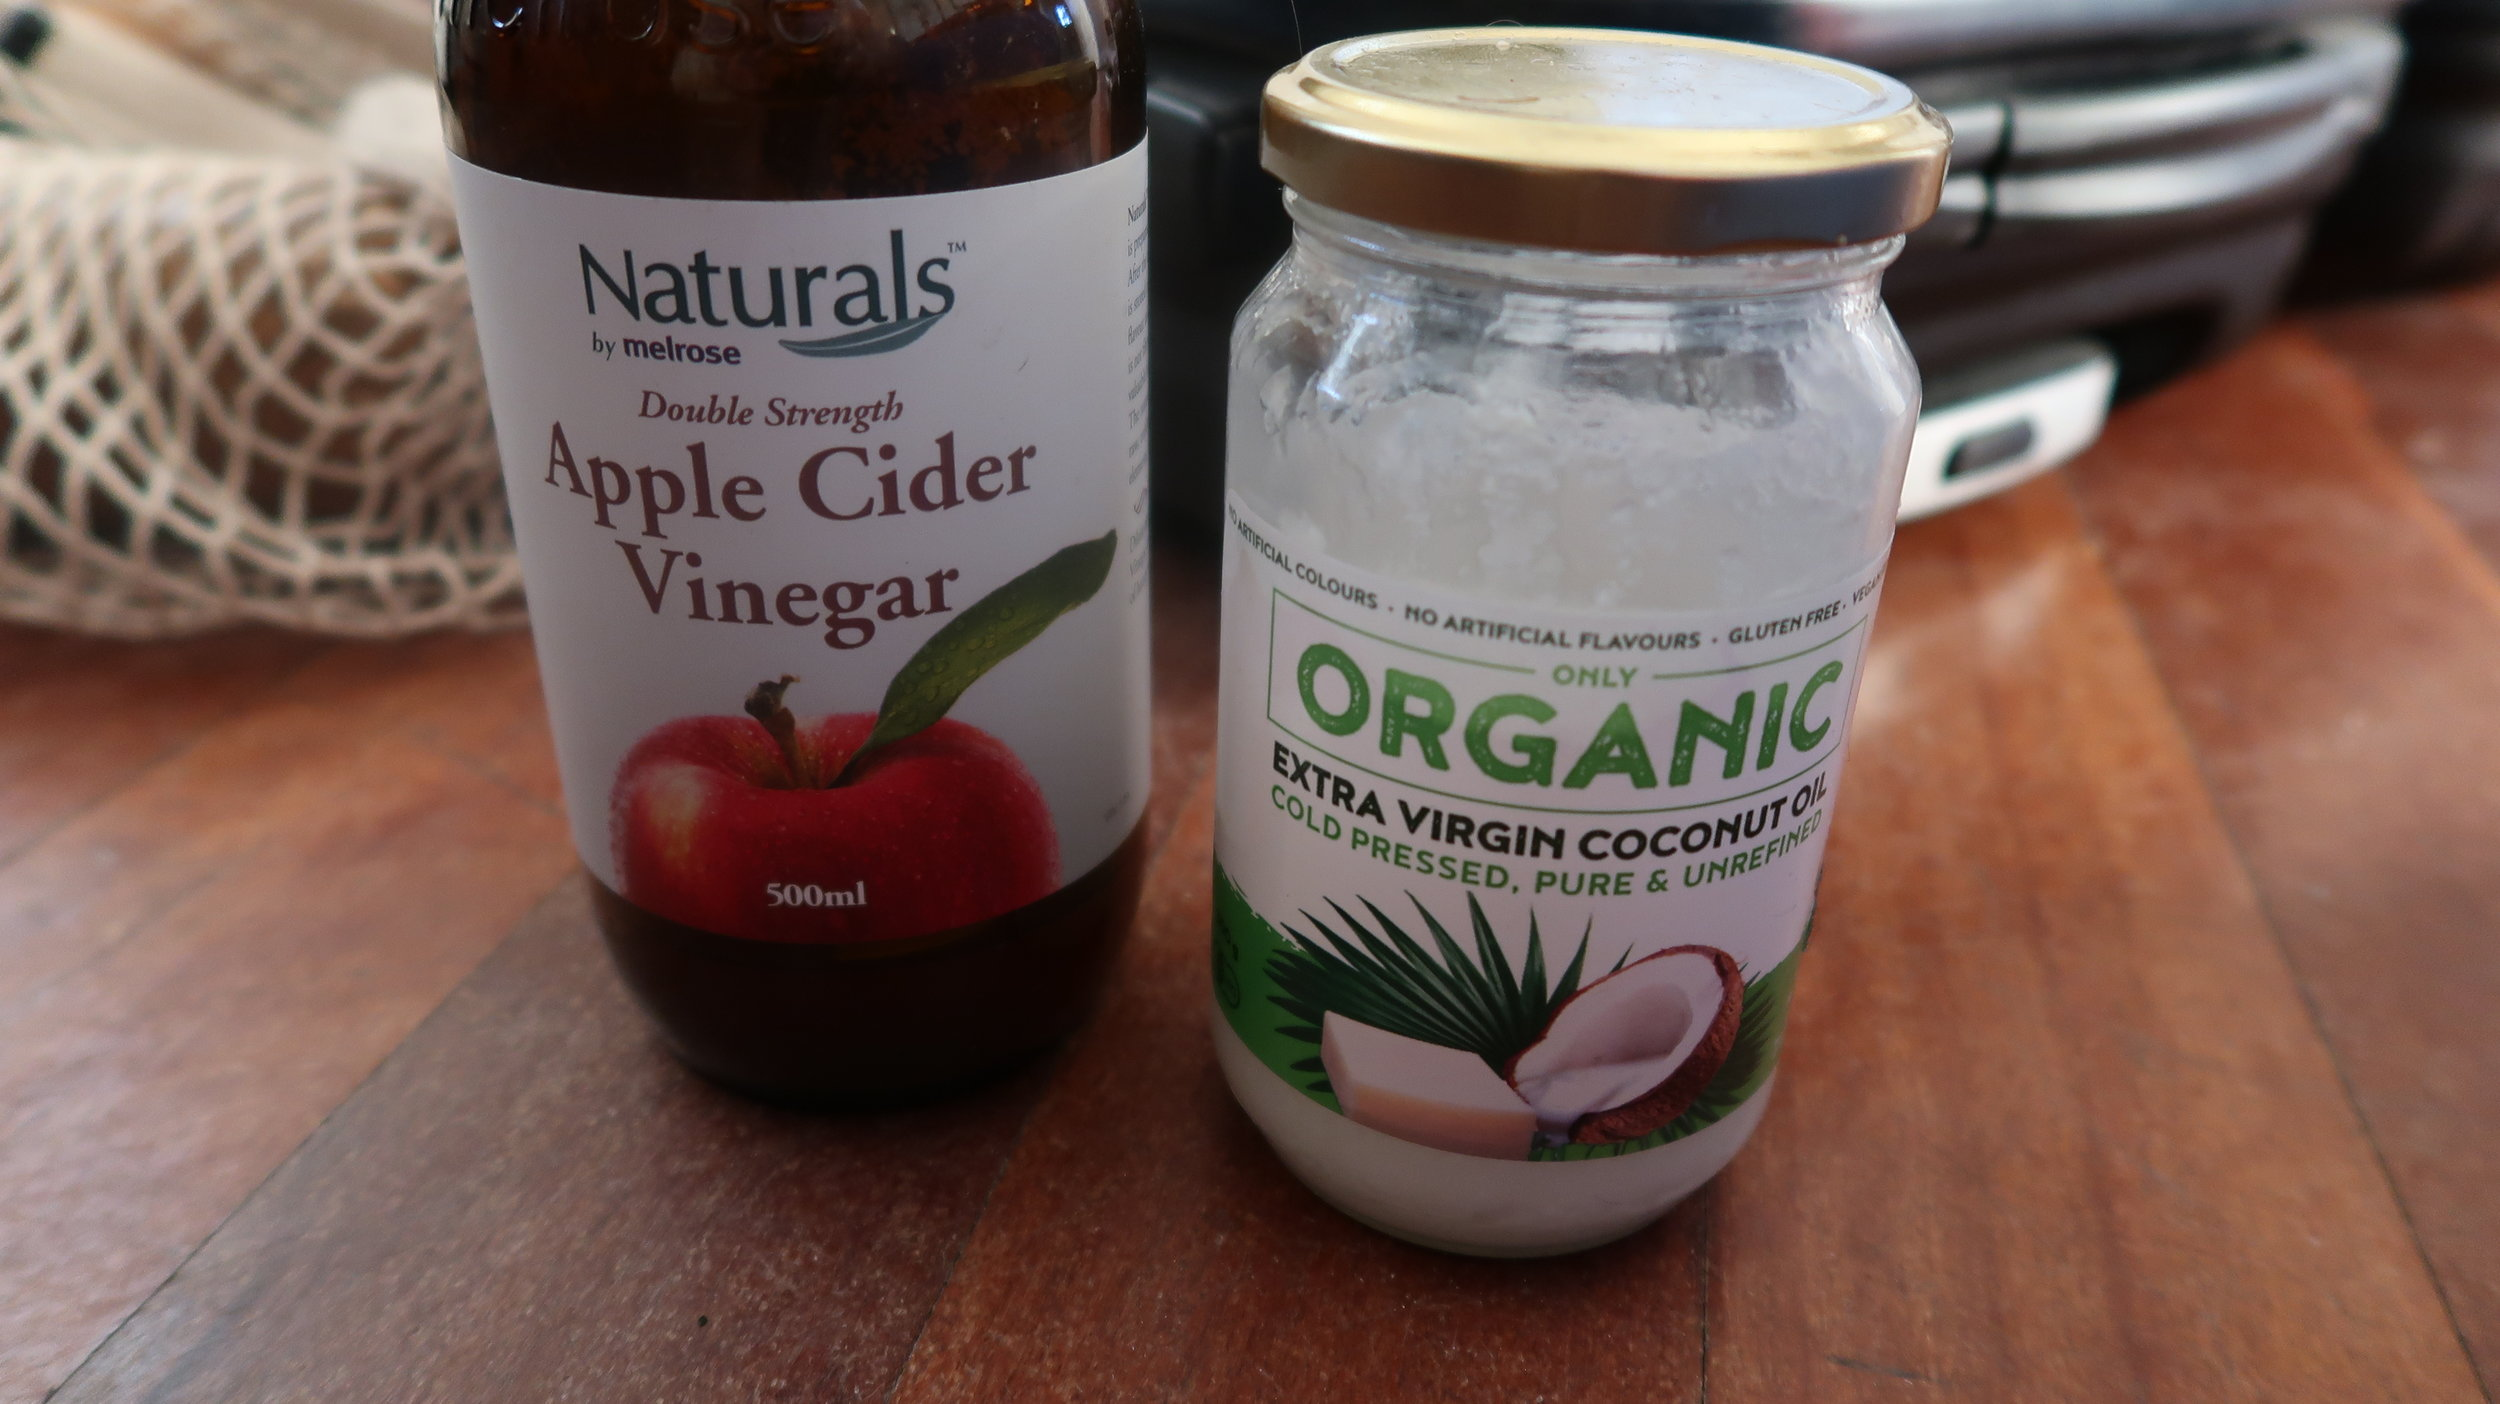 Two things I'm not packing in my bag to avoid leaks. Apple cider vinegar and coconut oil for my hair.